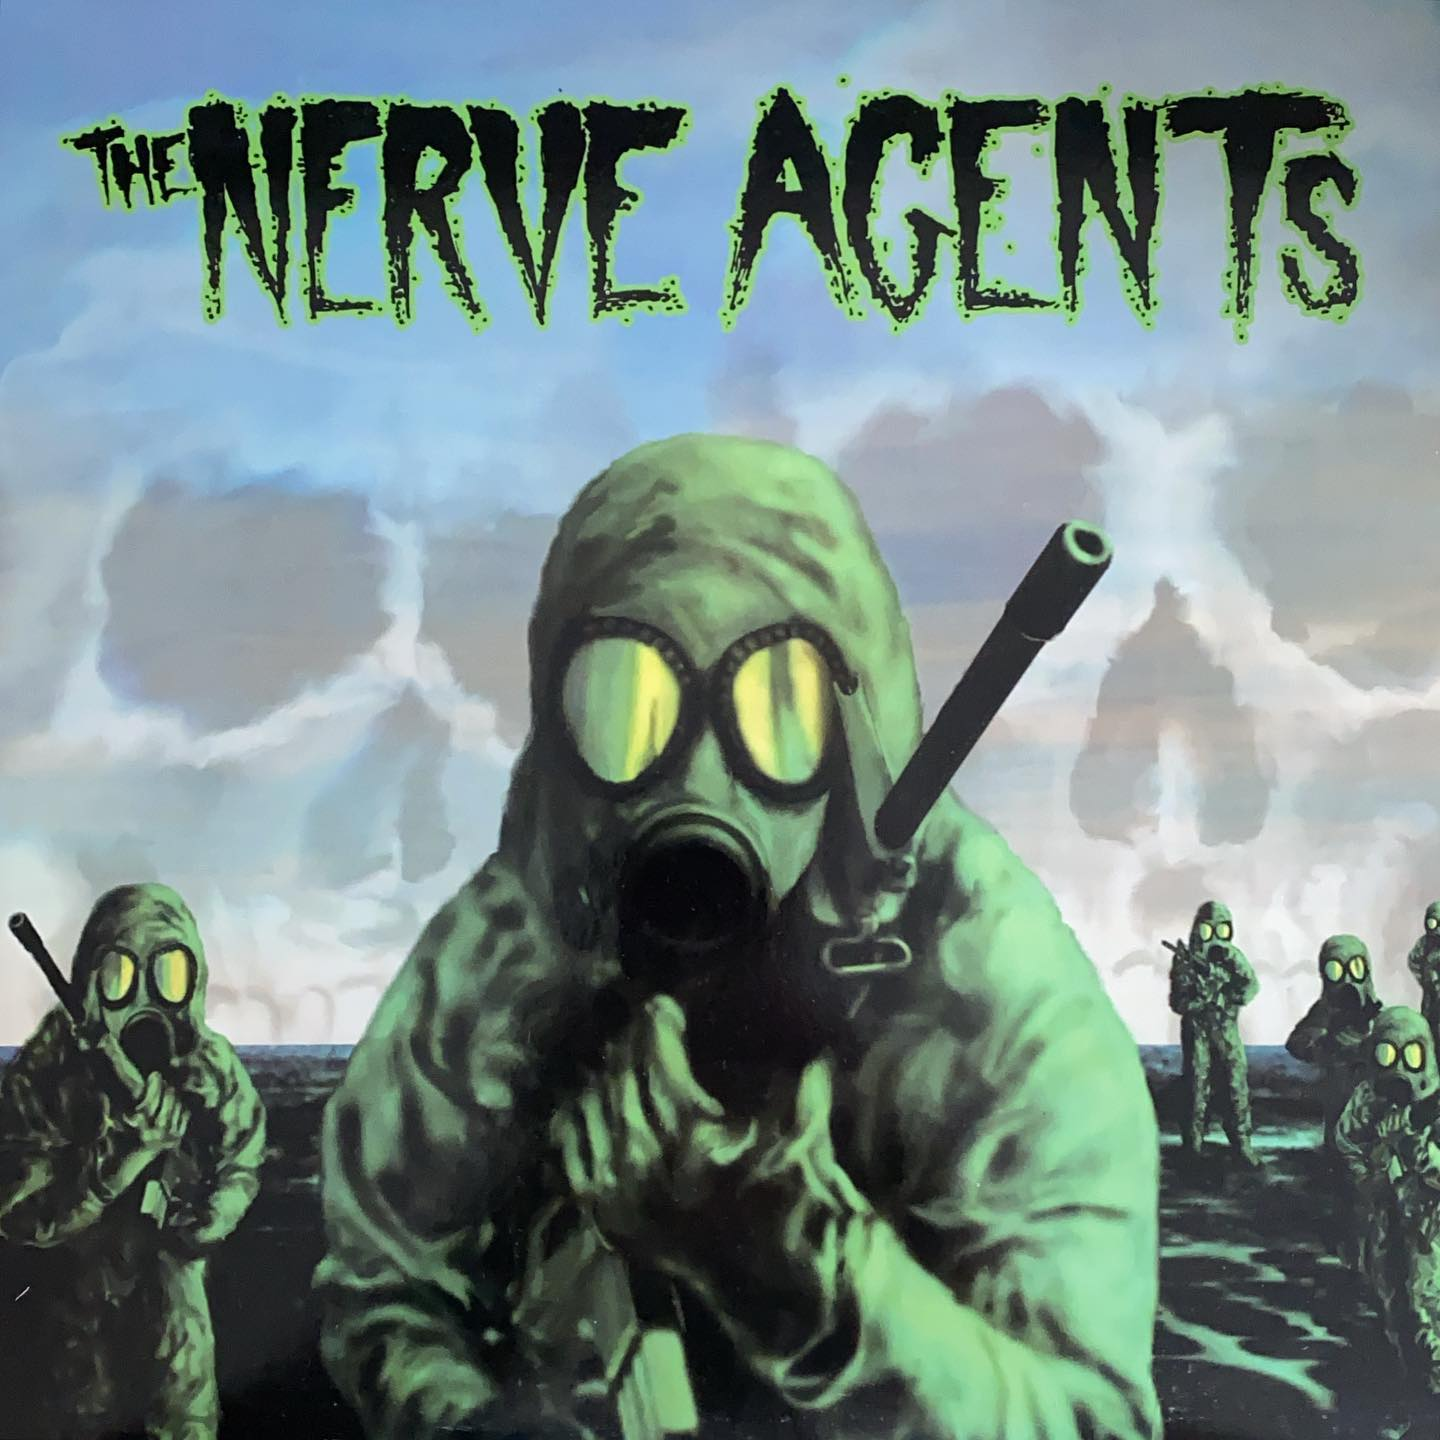 """the Nerve Agents #vinyl #nowspinning @revelationrecords """"My drive in life comes from the fear of mediocrity. Not slaving with the herd, running blind and aimless. SEIZE THE DAY."""""""